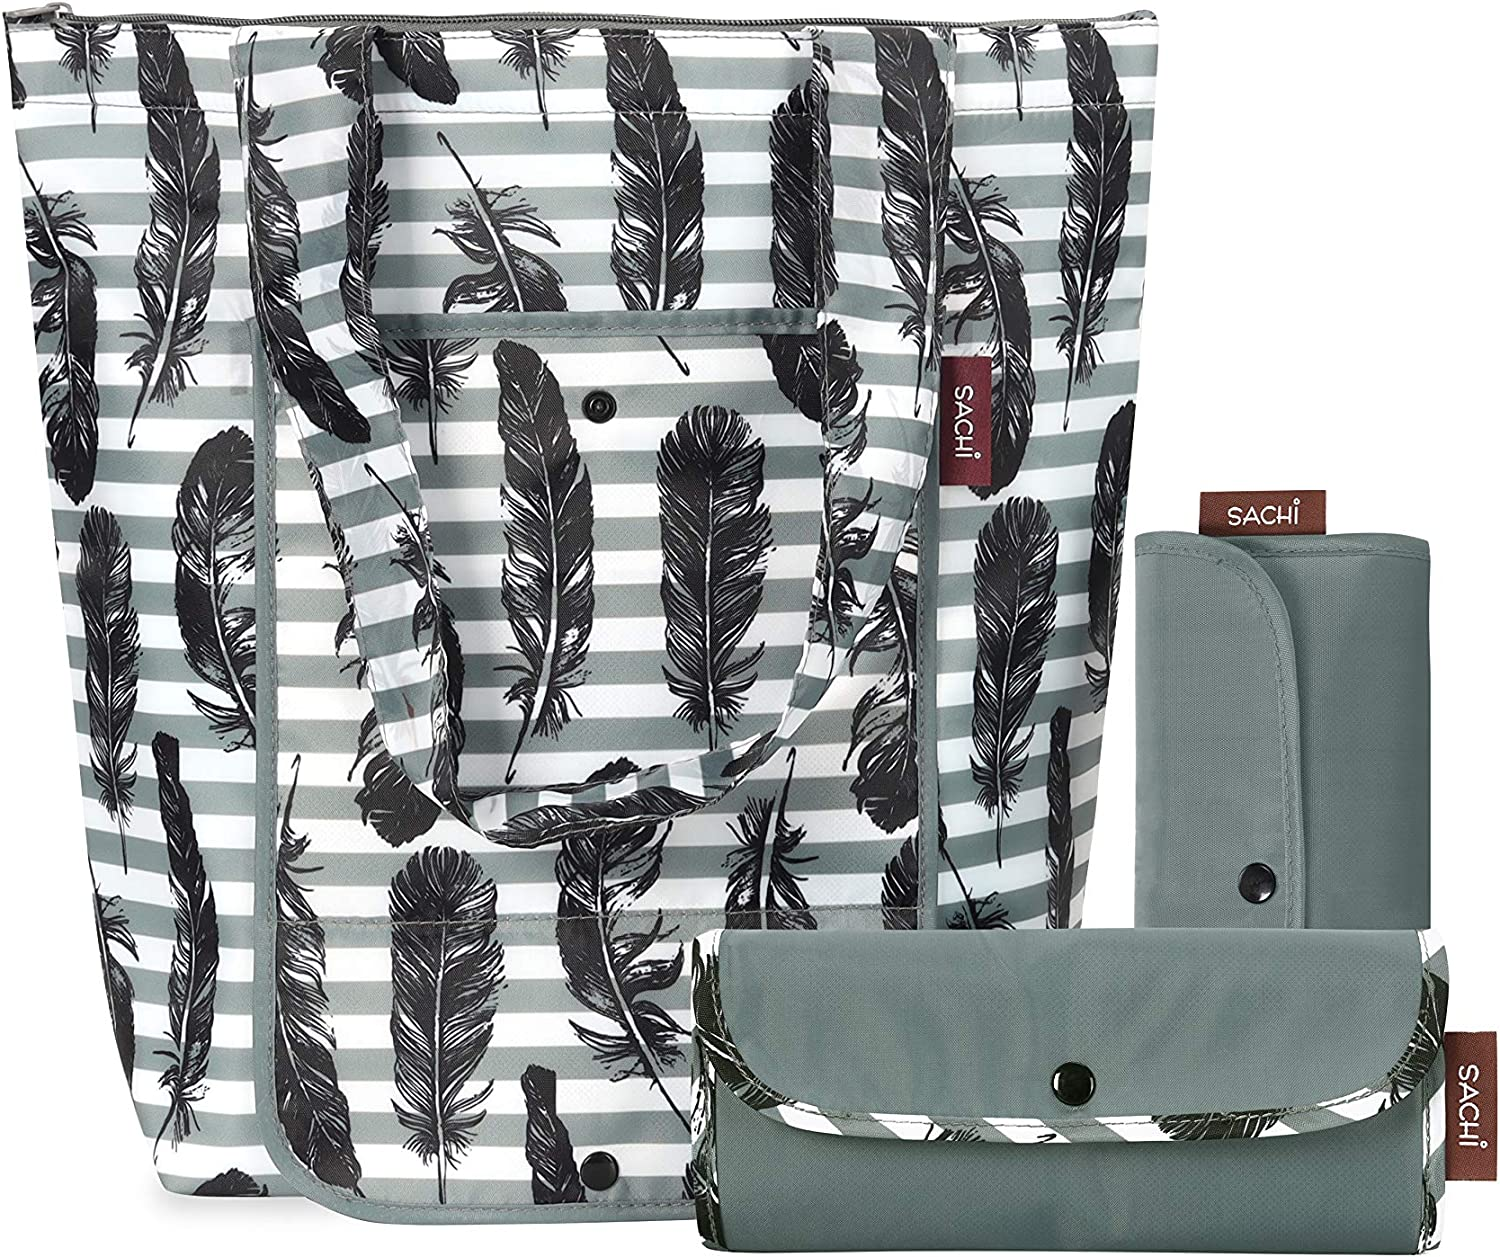 SACHI 3 Piece Market Totes Set - Insulated Grocery Bags For Cold and Hot Foods - Durable, Kitchen Reusable Grocery Bags - Durable, Insulated Thermal Bags Grey Feather Stripes